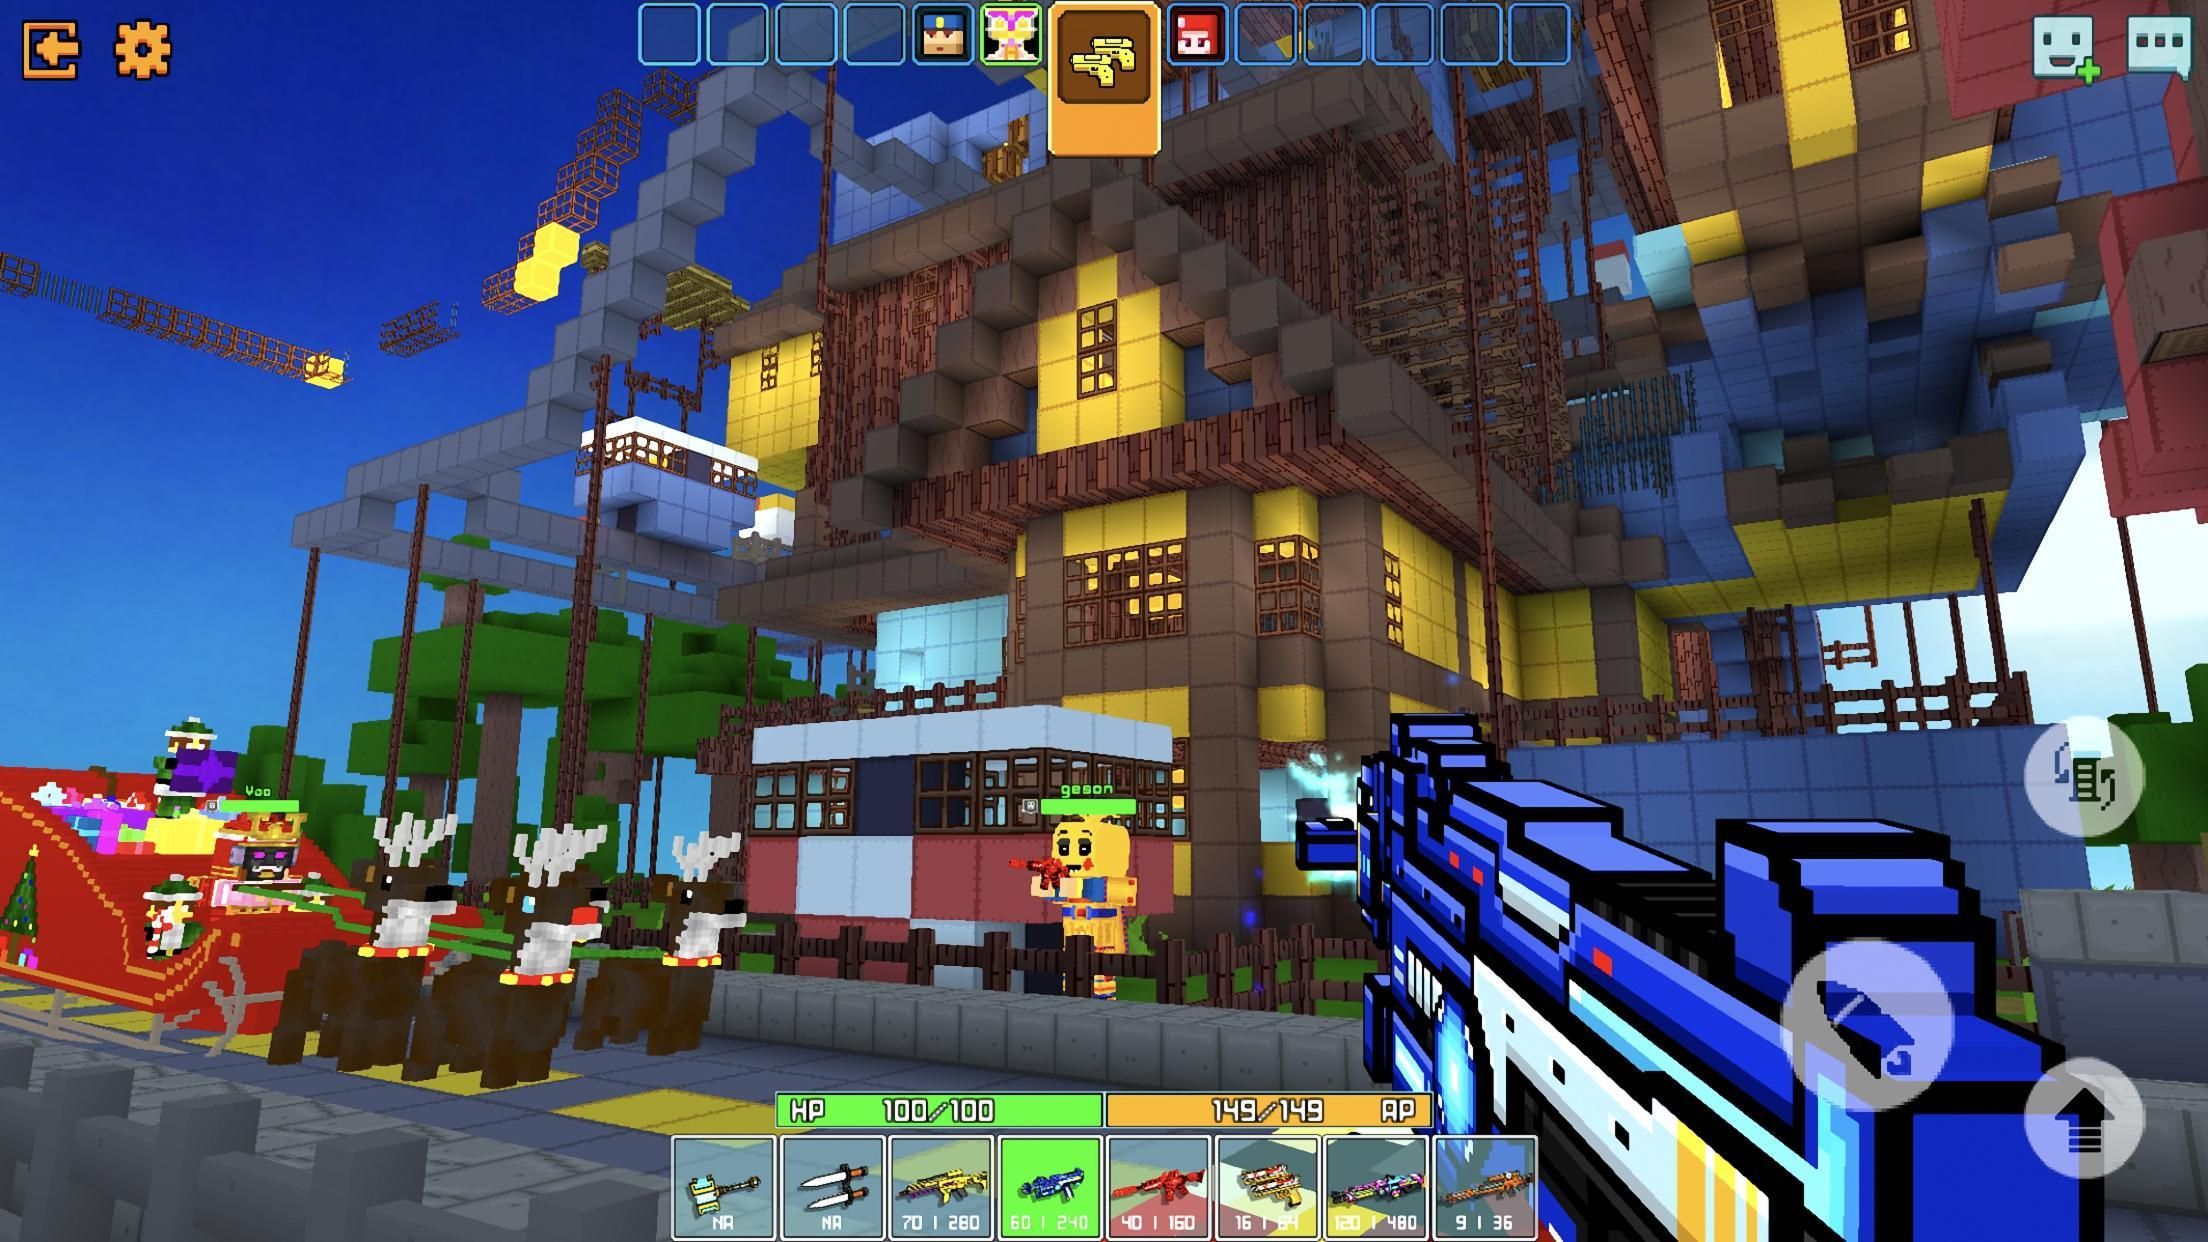 Cops N Robbers - 3D Pixel Craft Gun Shooting Games 9.8.4 Screenshot 2